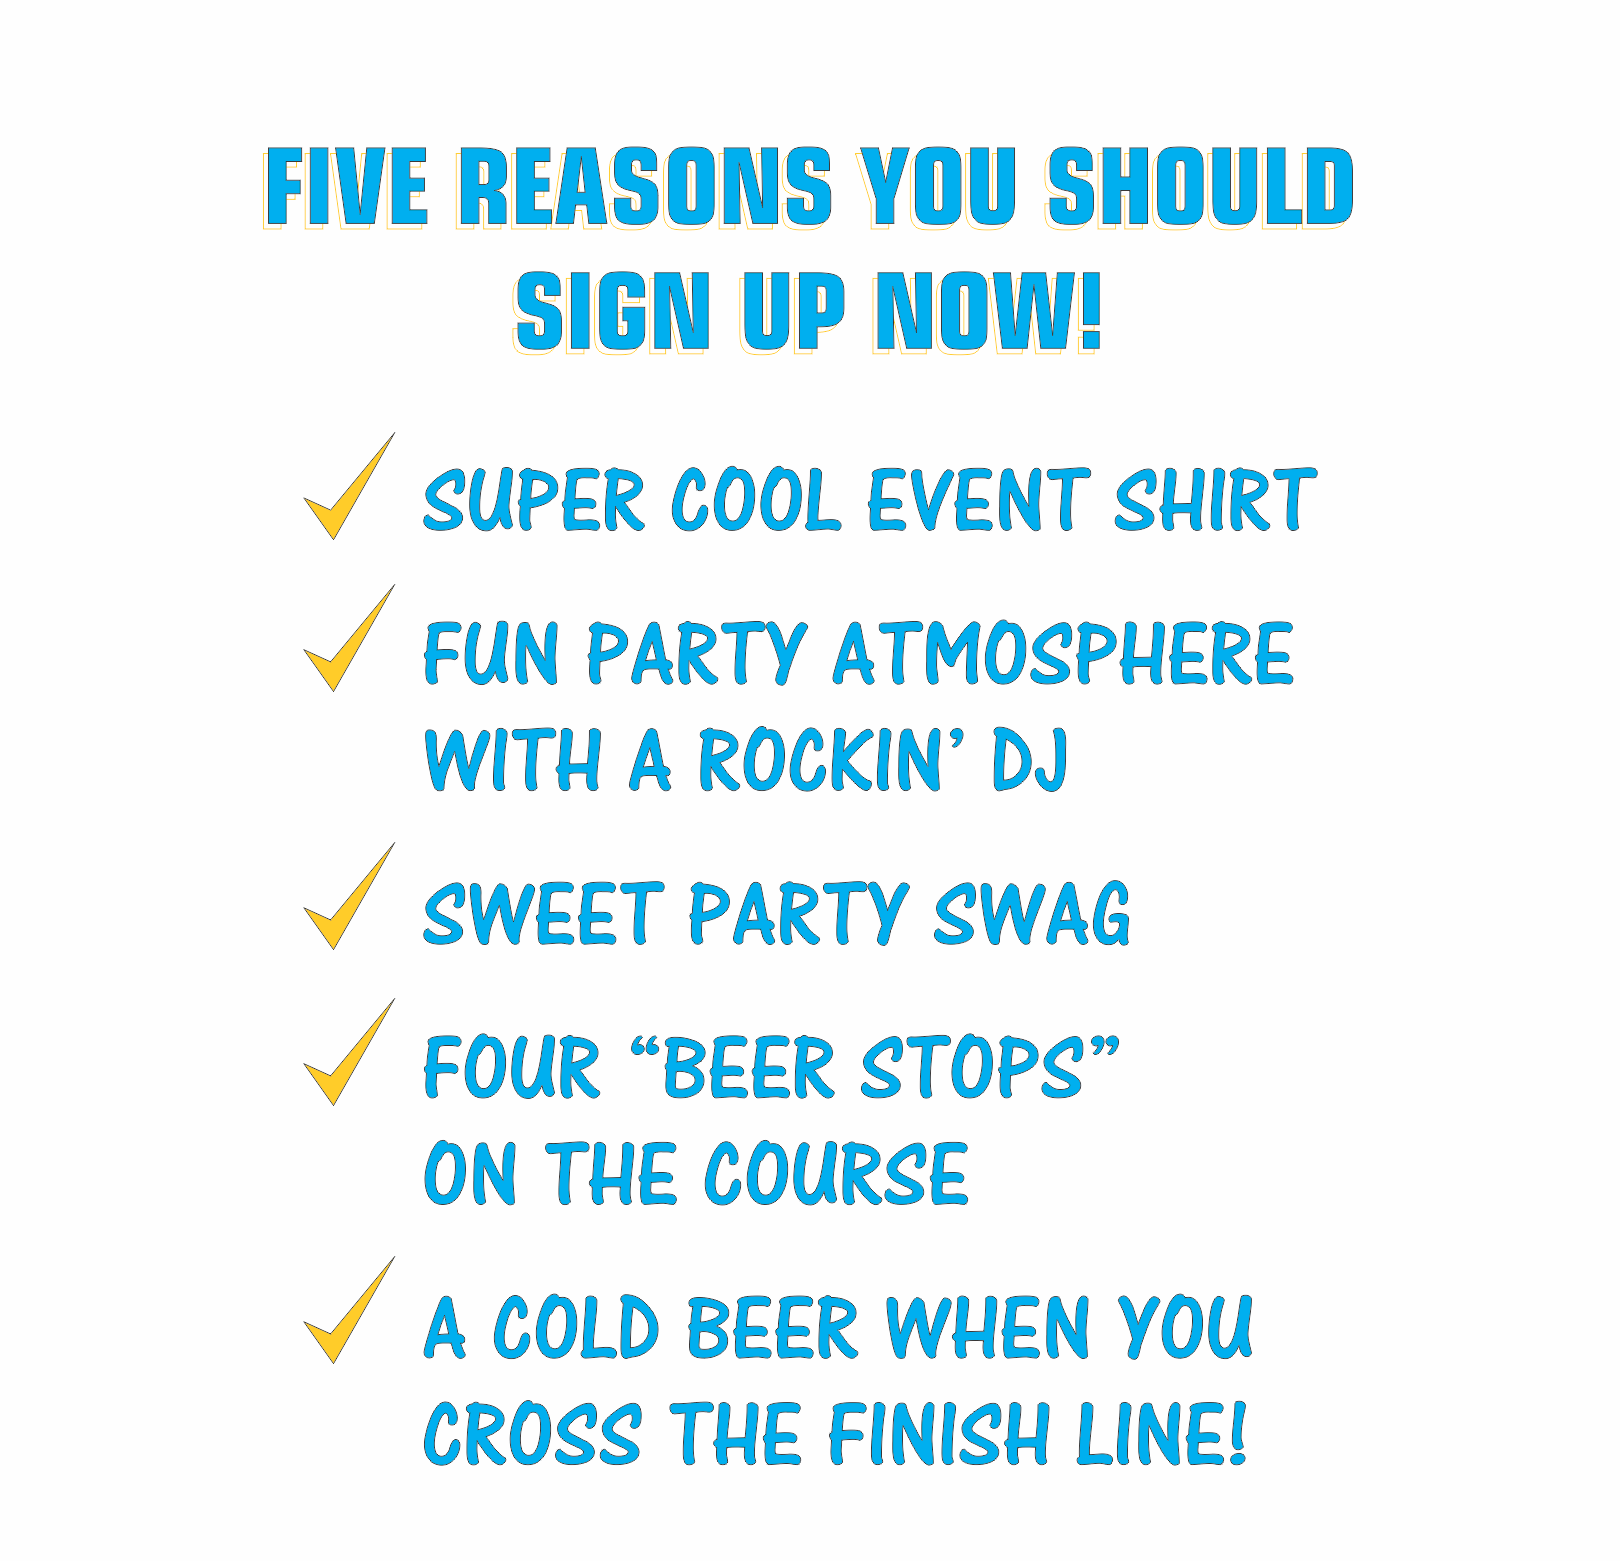 5 REASONS TO SIGN UP NOW!